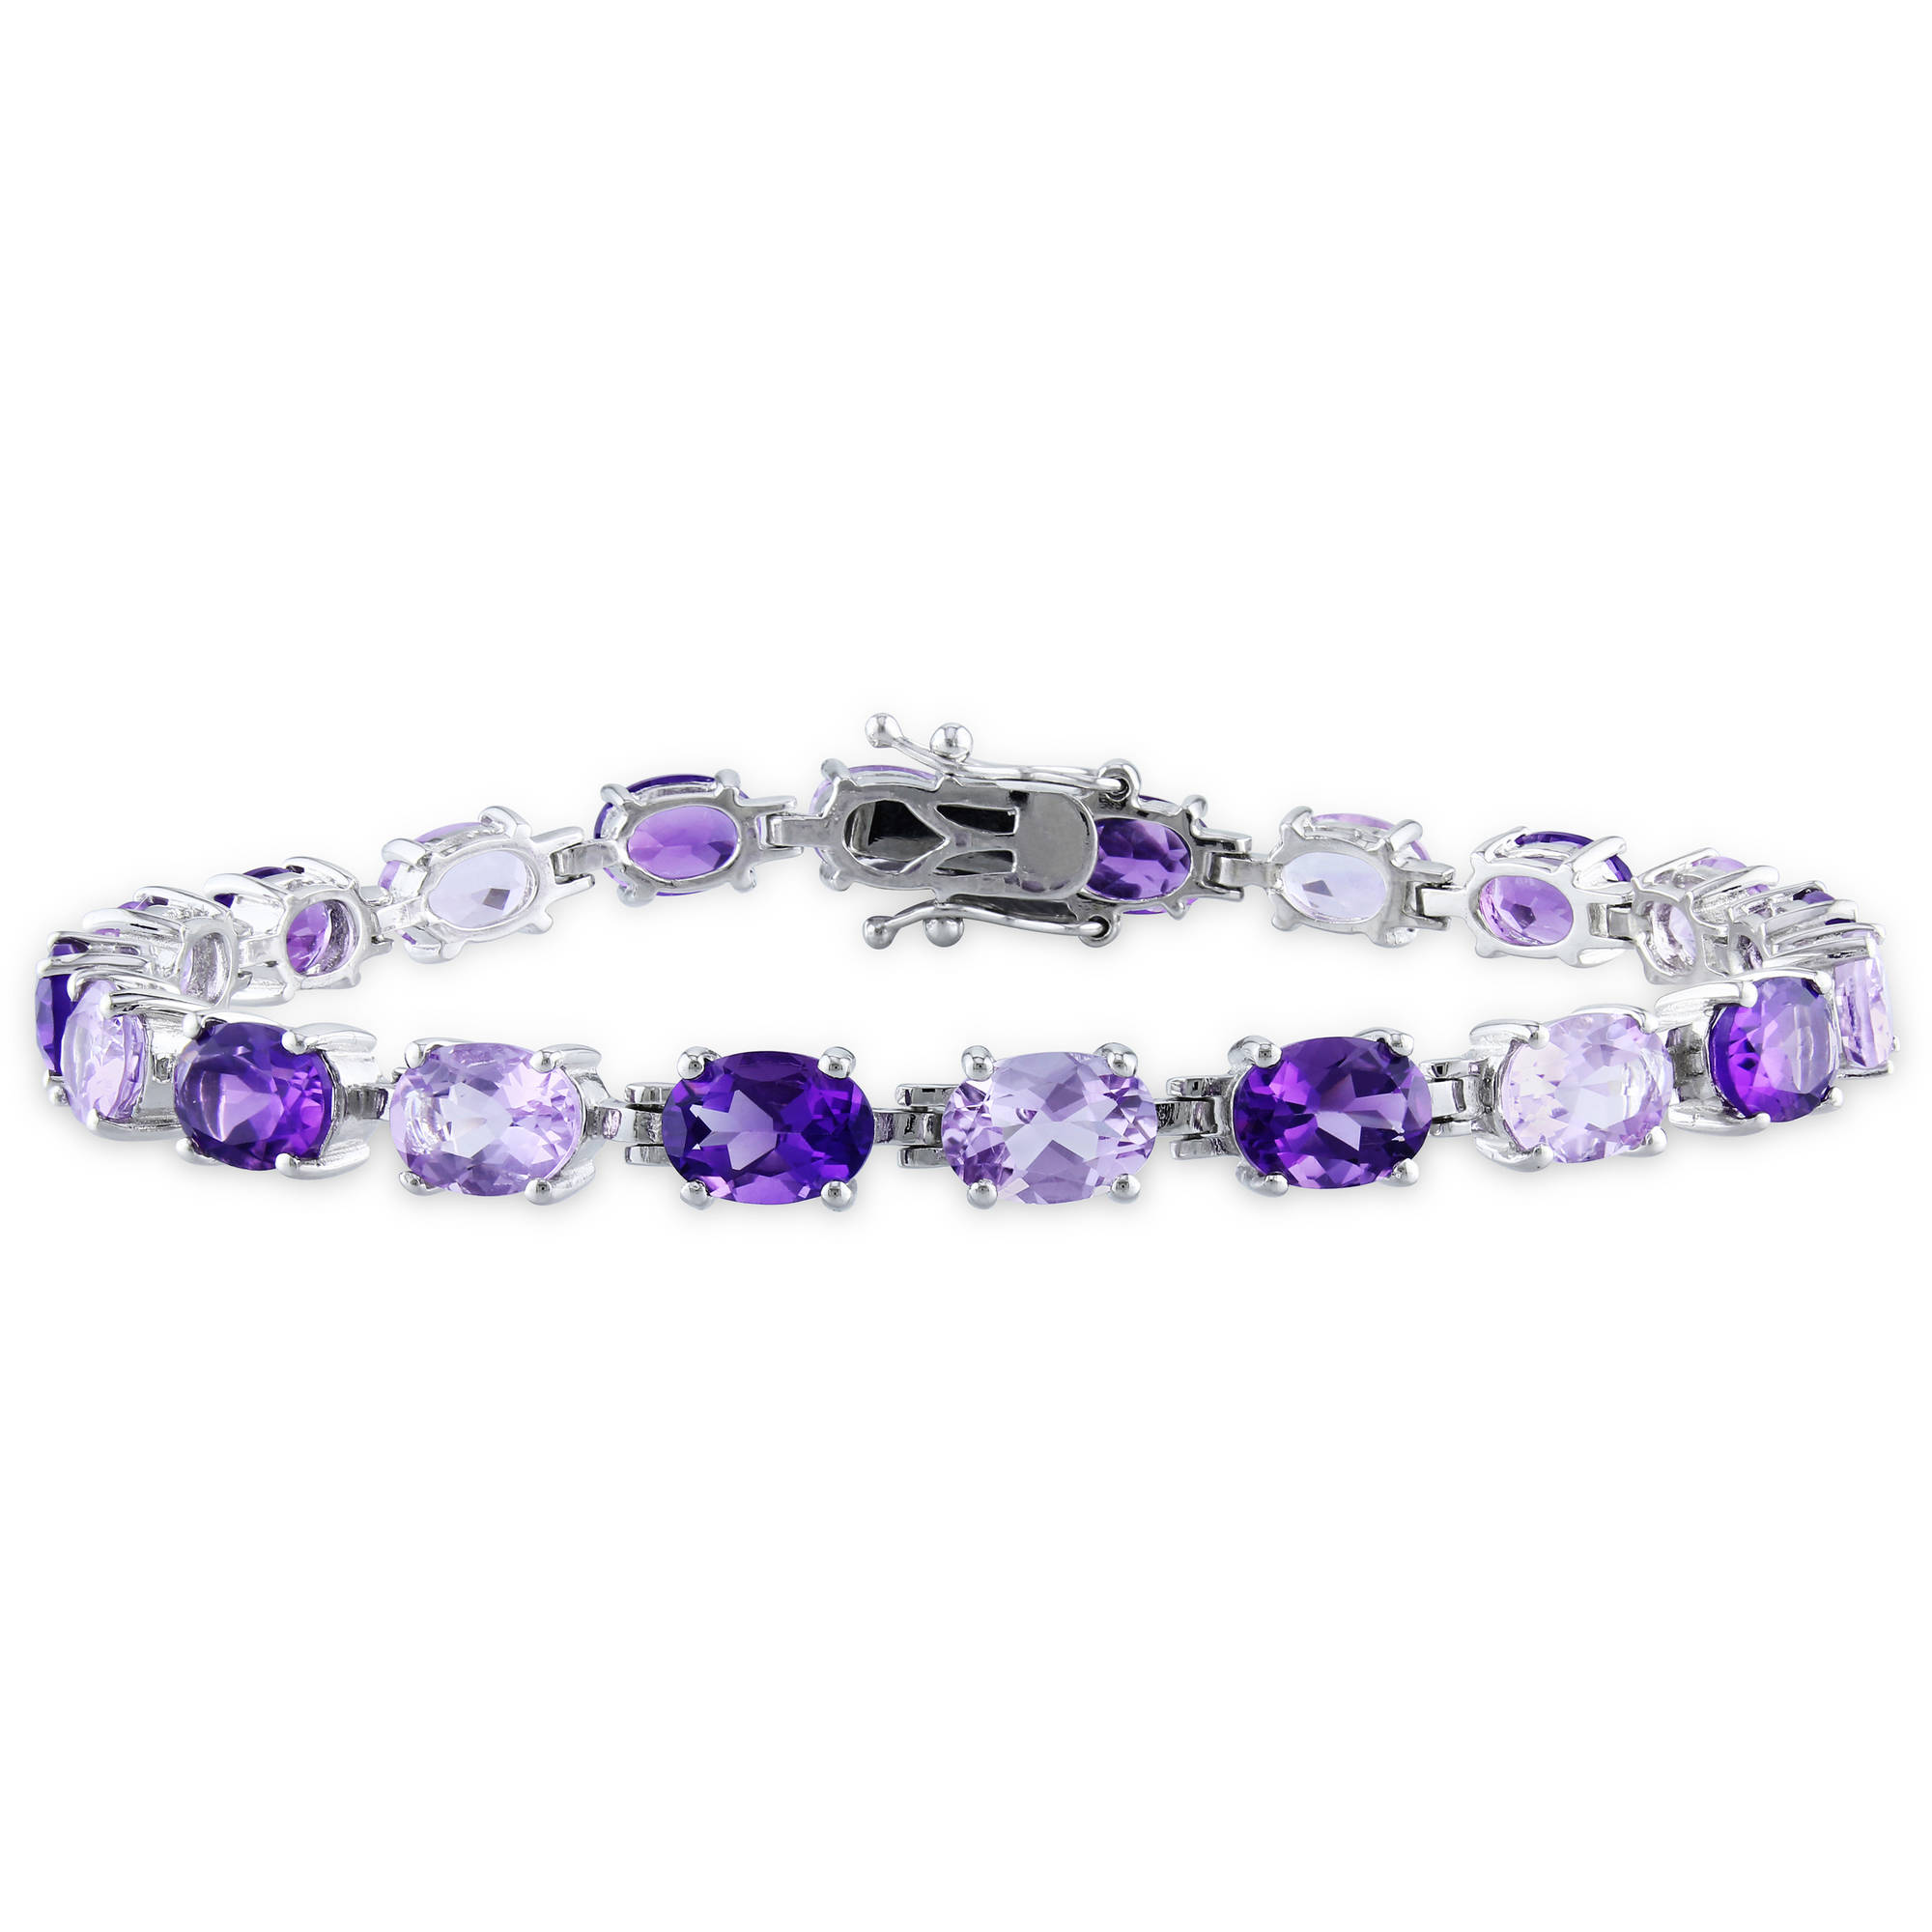 "14-1 2 Carat T.G.W. Africa Amethyst and Rose de France Sterling Silver Fashion Bracelet, 7.25"" by Generic"